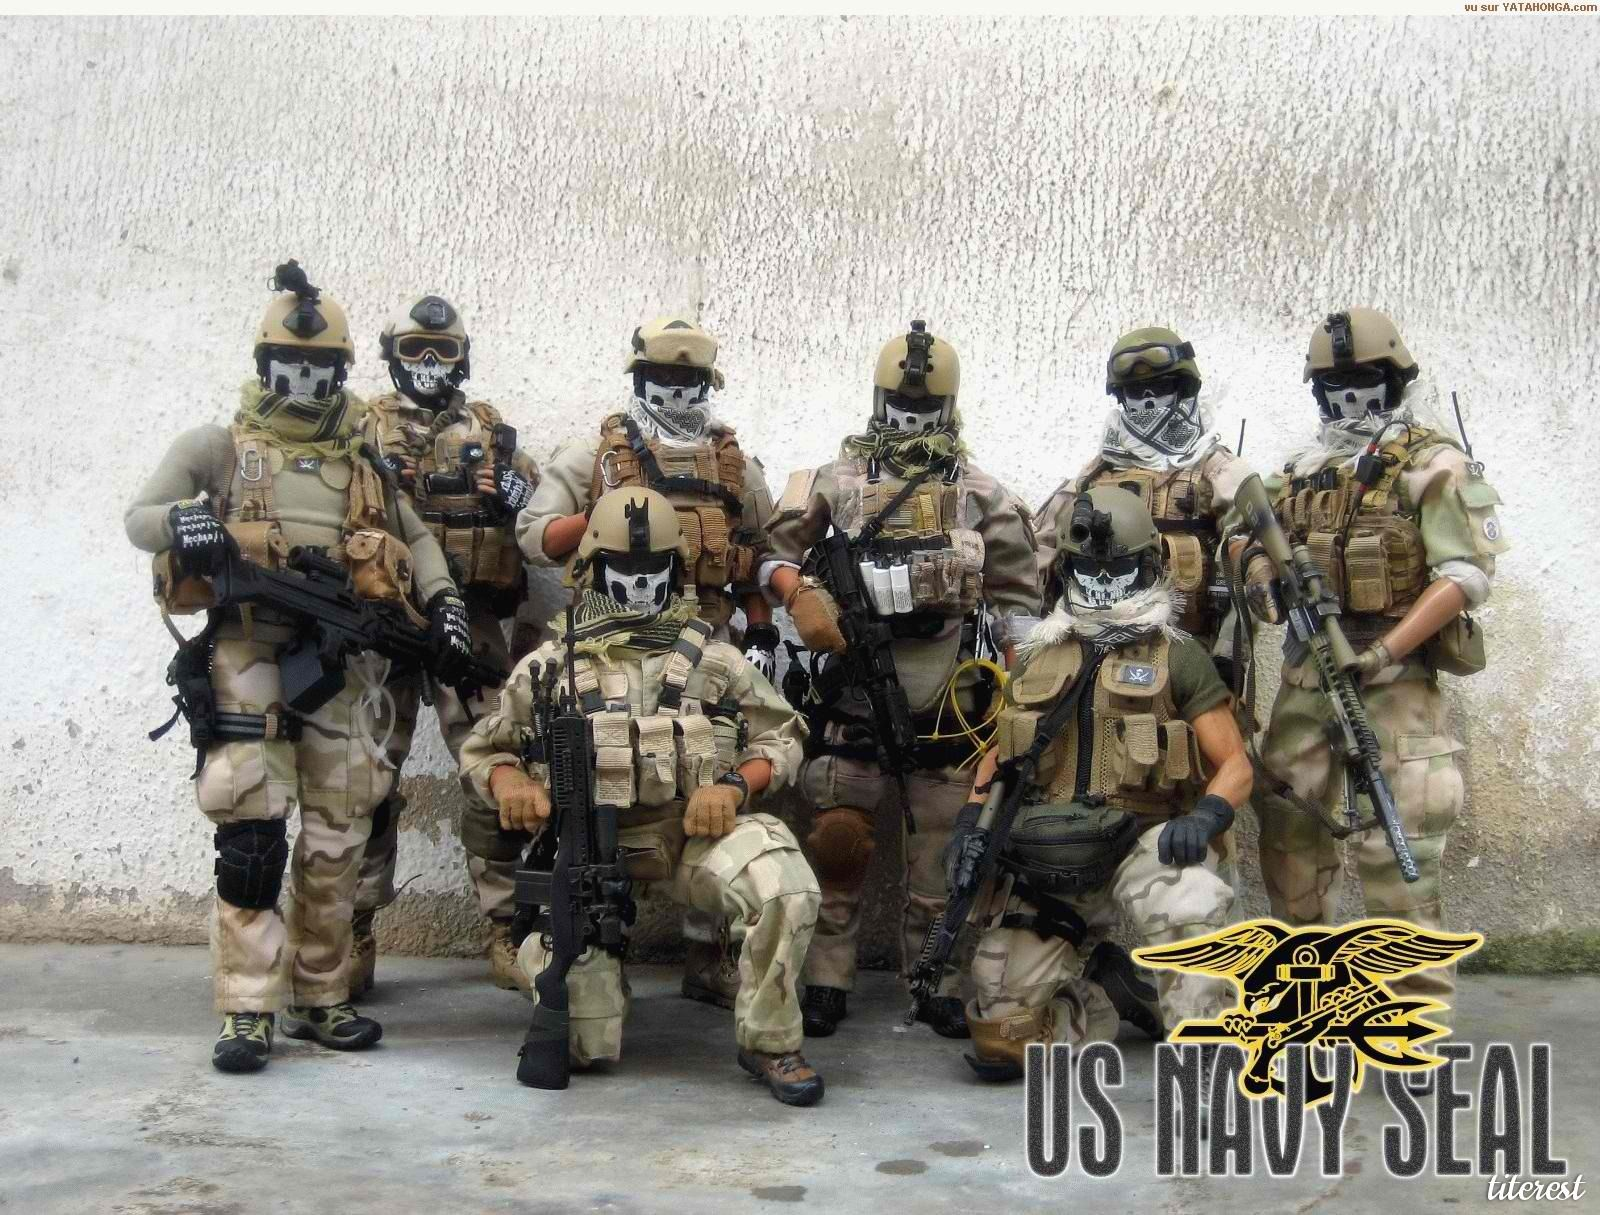 17 Best images about Navy Seals on Pinterest   United states navy ...